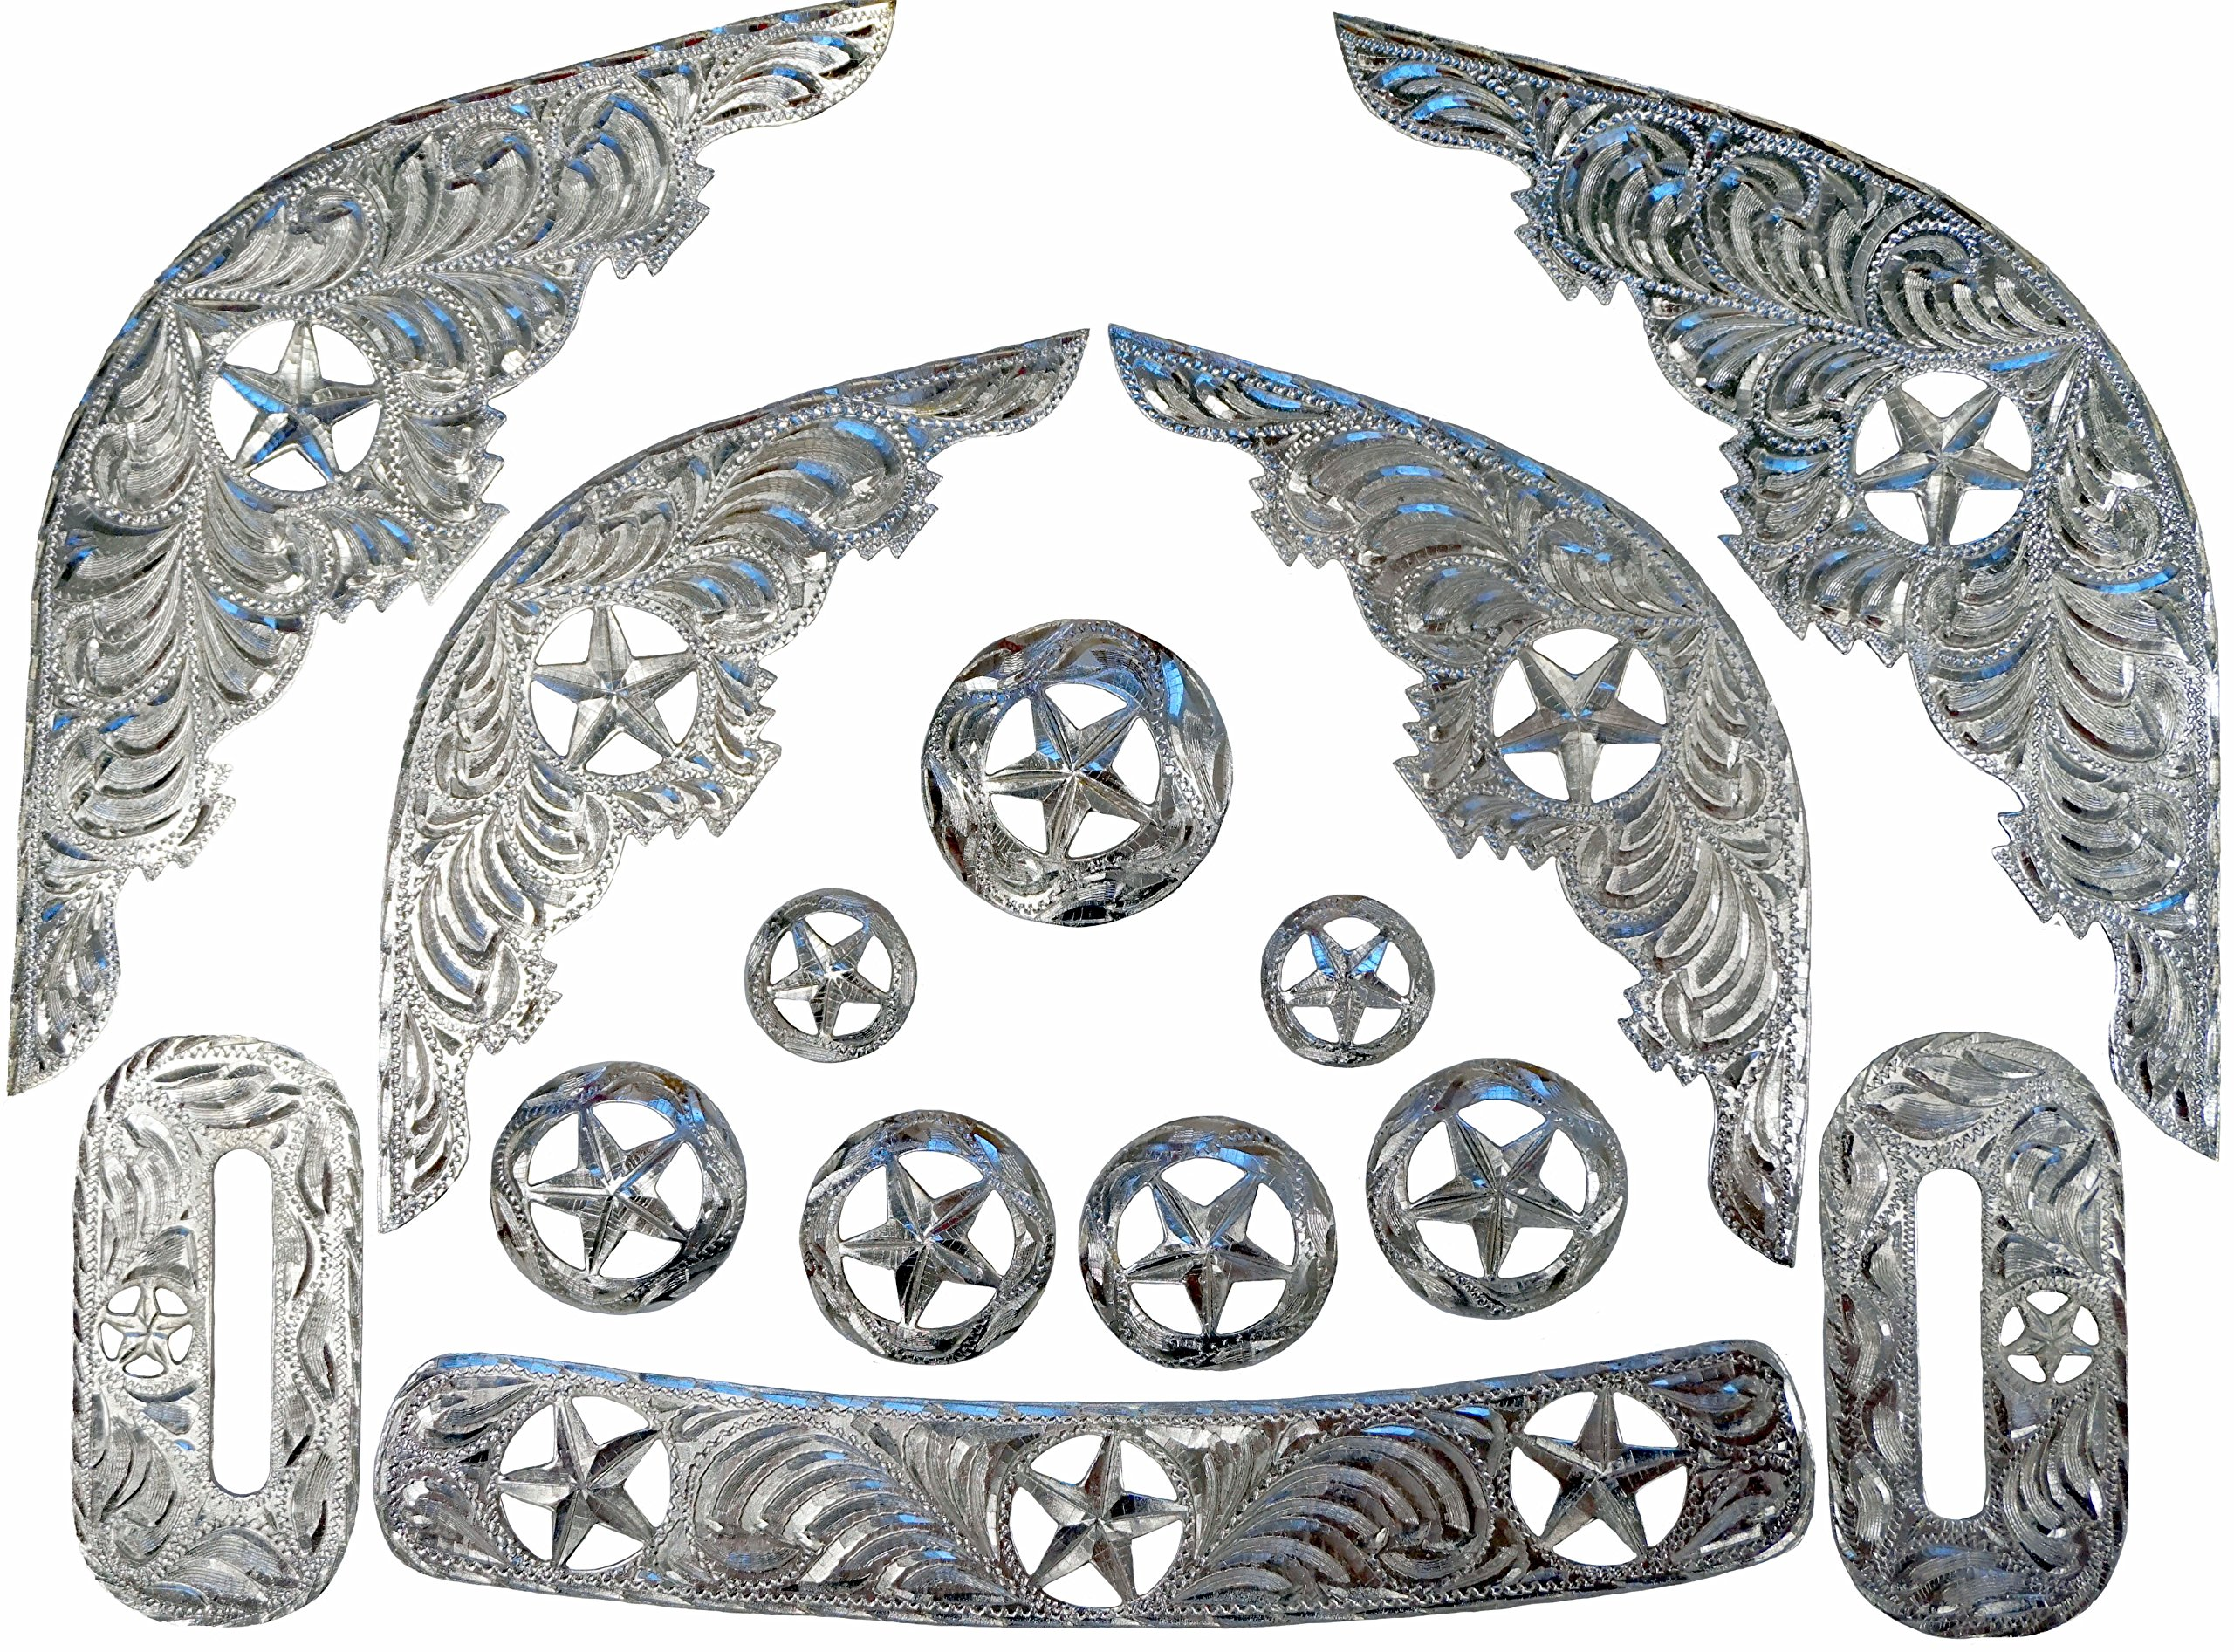 Silver Colored Star Cut-Out Engraved Replacement Saddle Trim Kit 14 Pieces